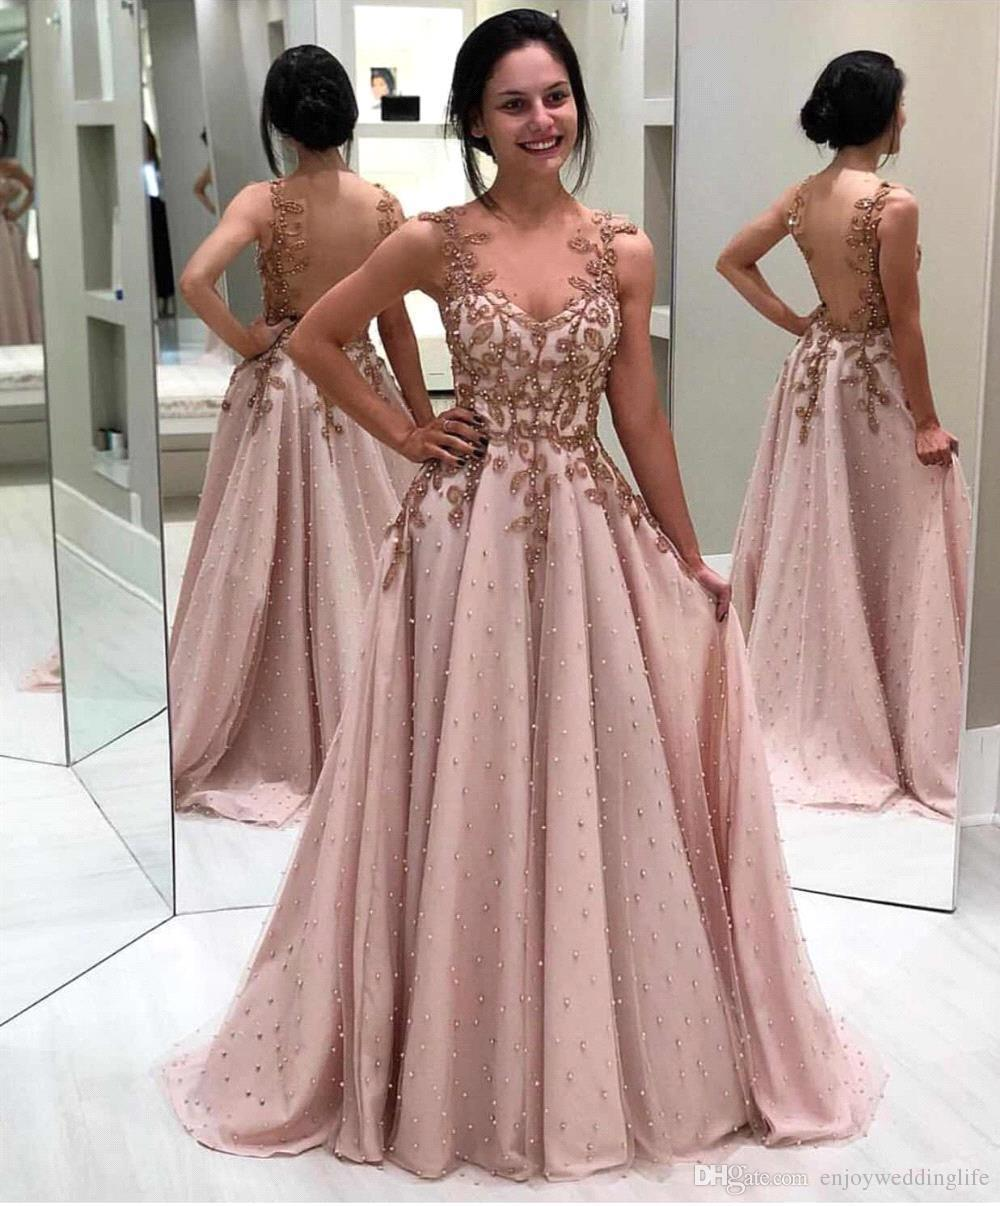 2019 Light Pink Lace Long Prom Dresses Tulle Lace Applique Beaded Seen Through Back Floor Length Formal Party Evening Gowns Bc2096 Modest Prom Dress